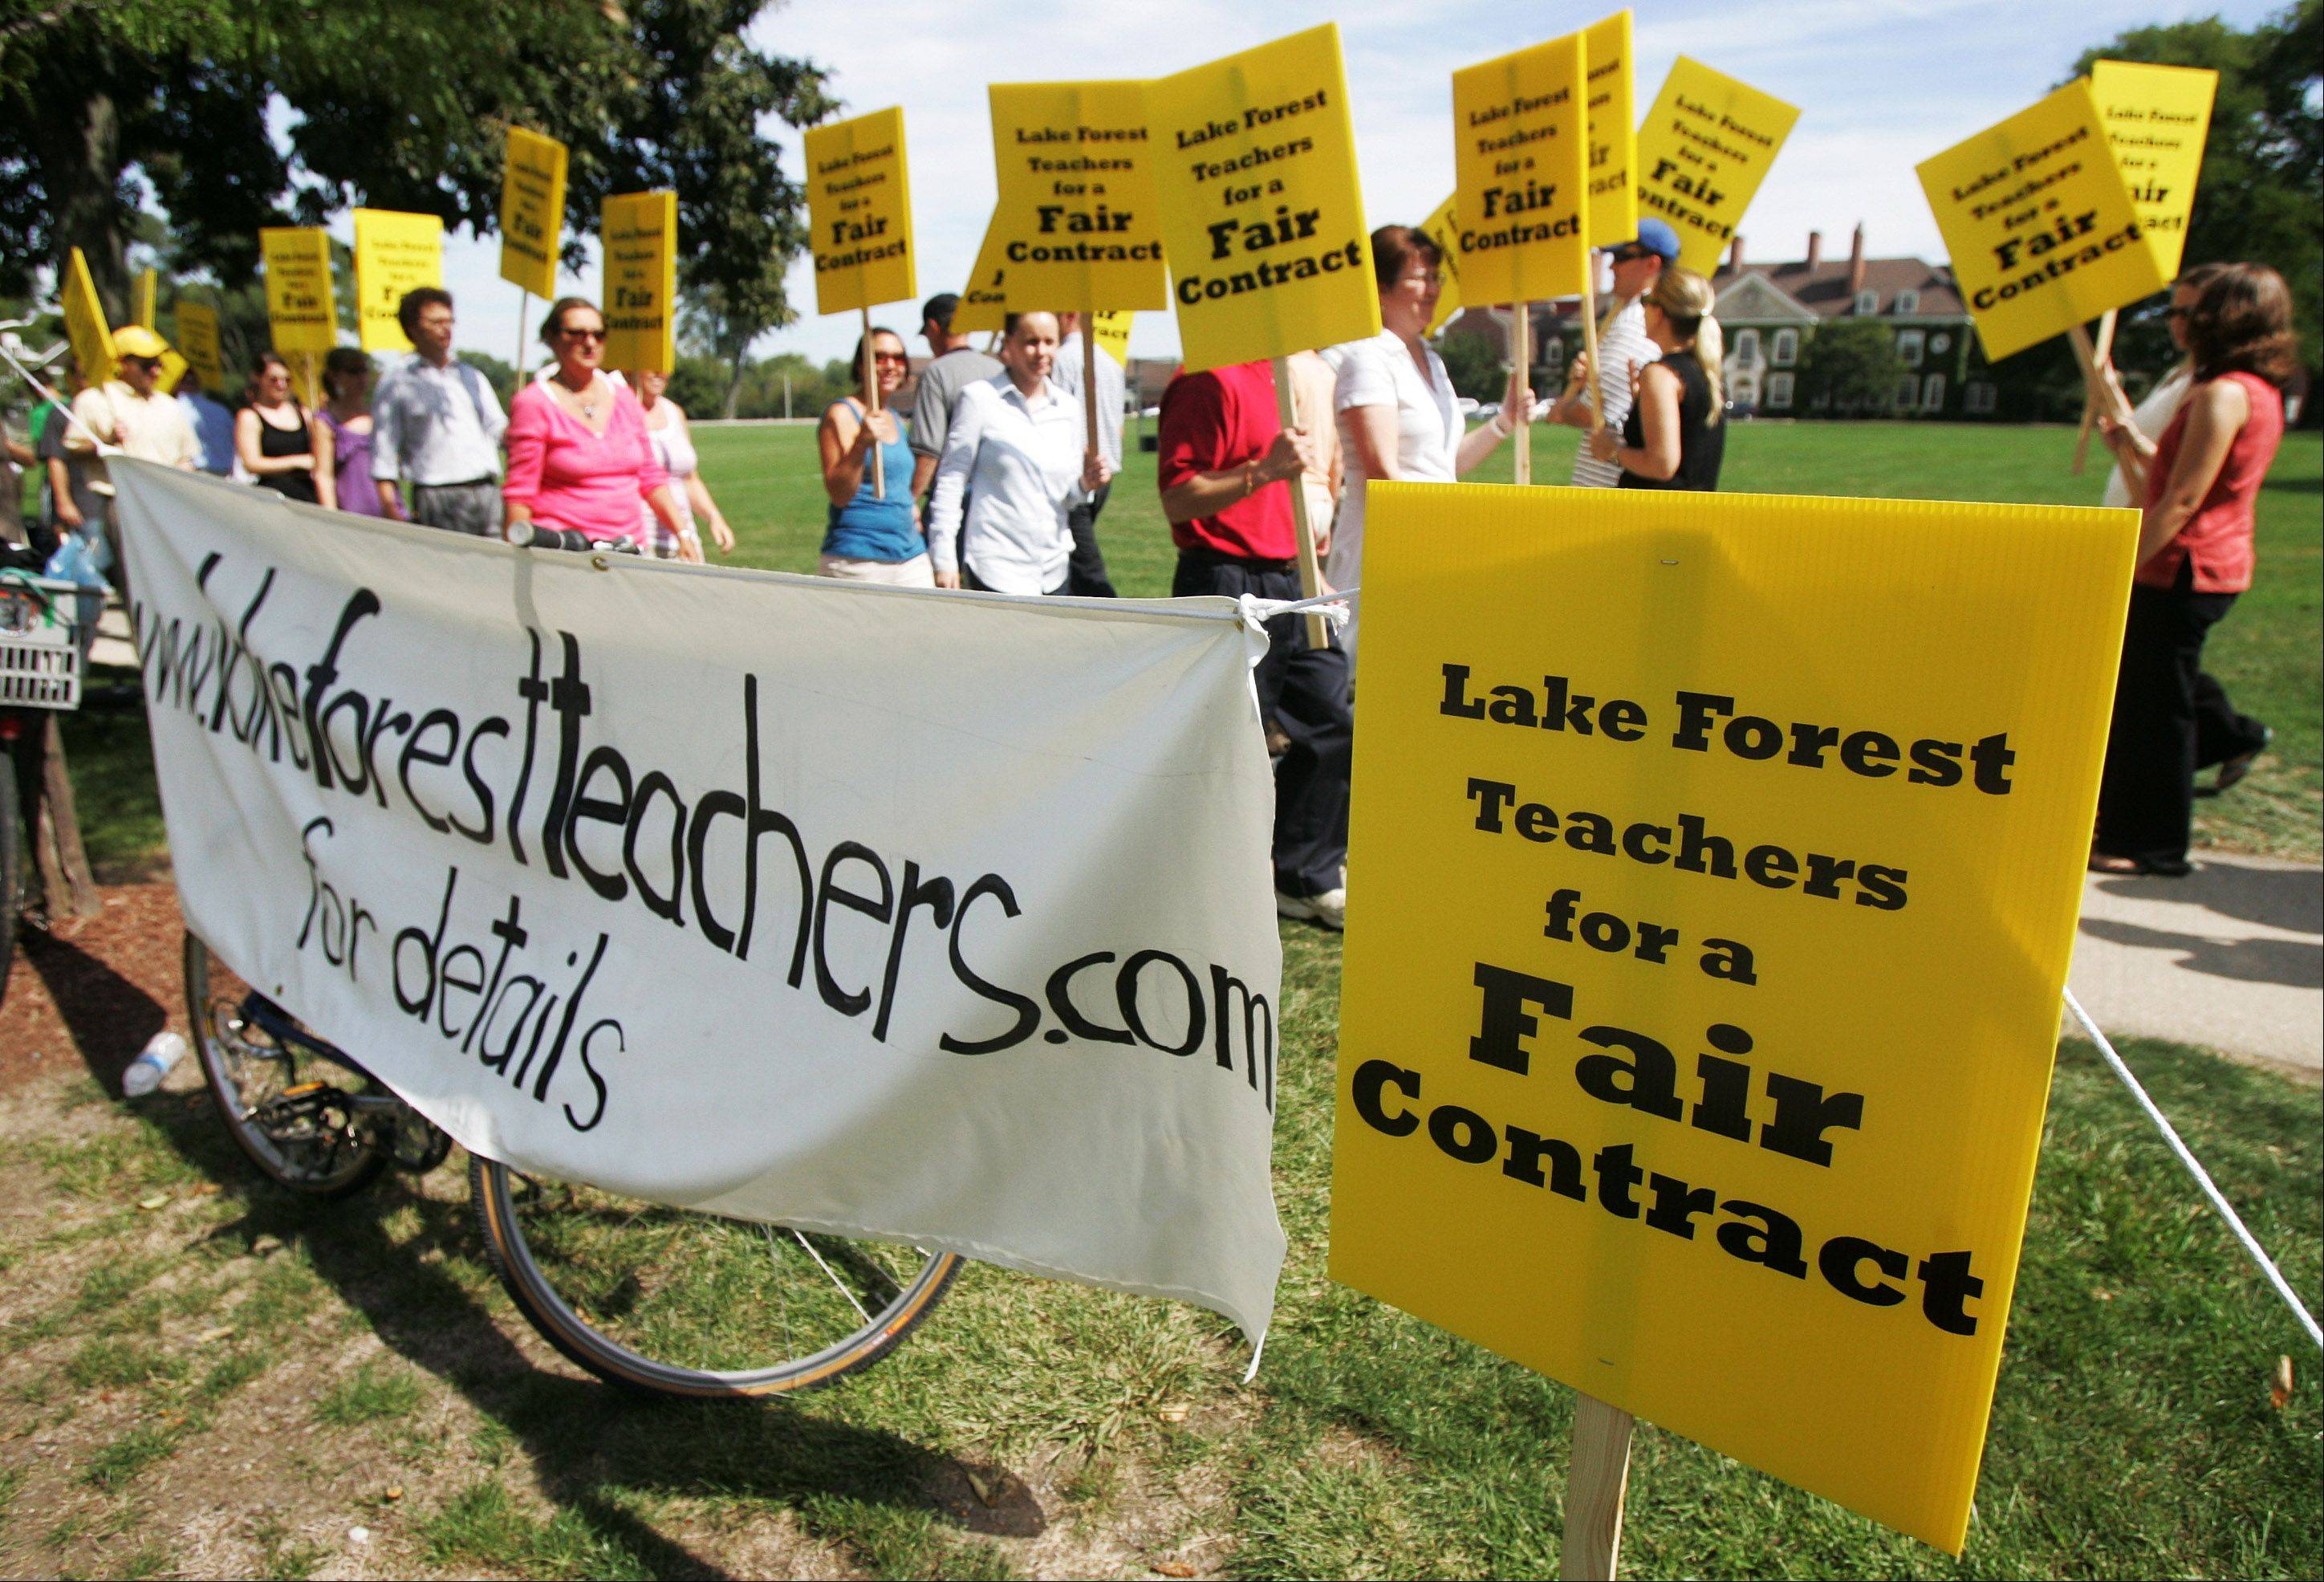 Lake Forest High School teachers on strike over salary and benefits